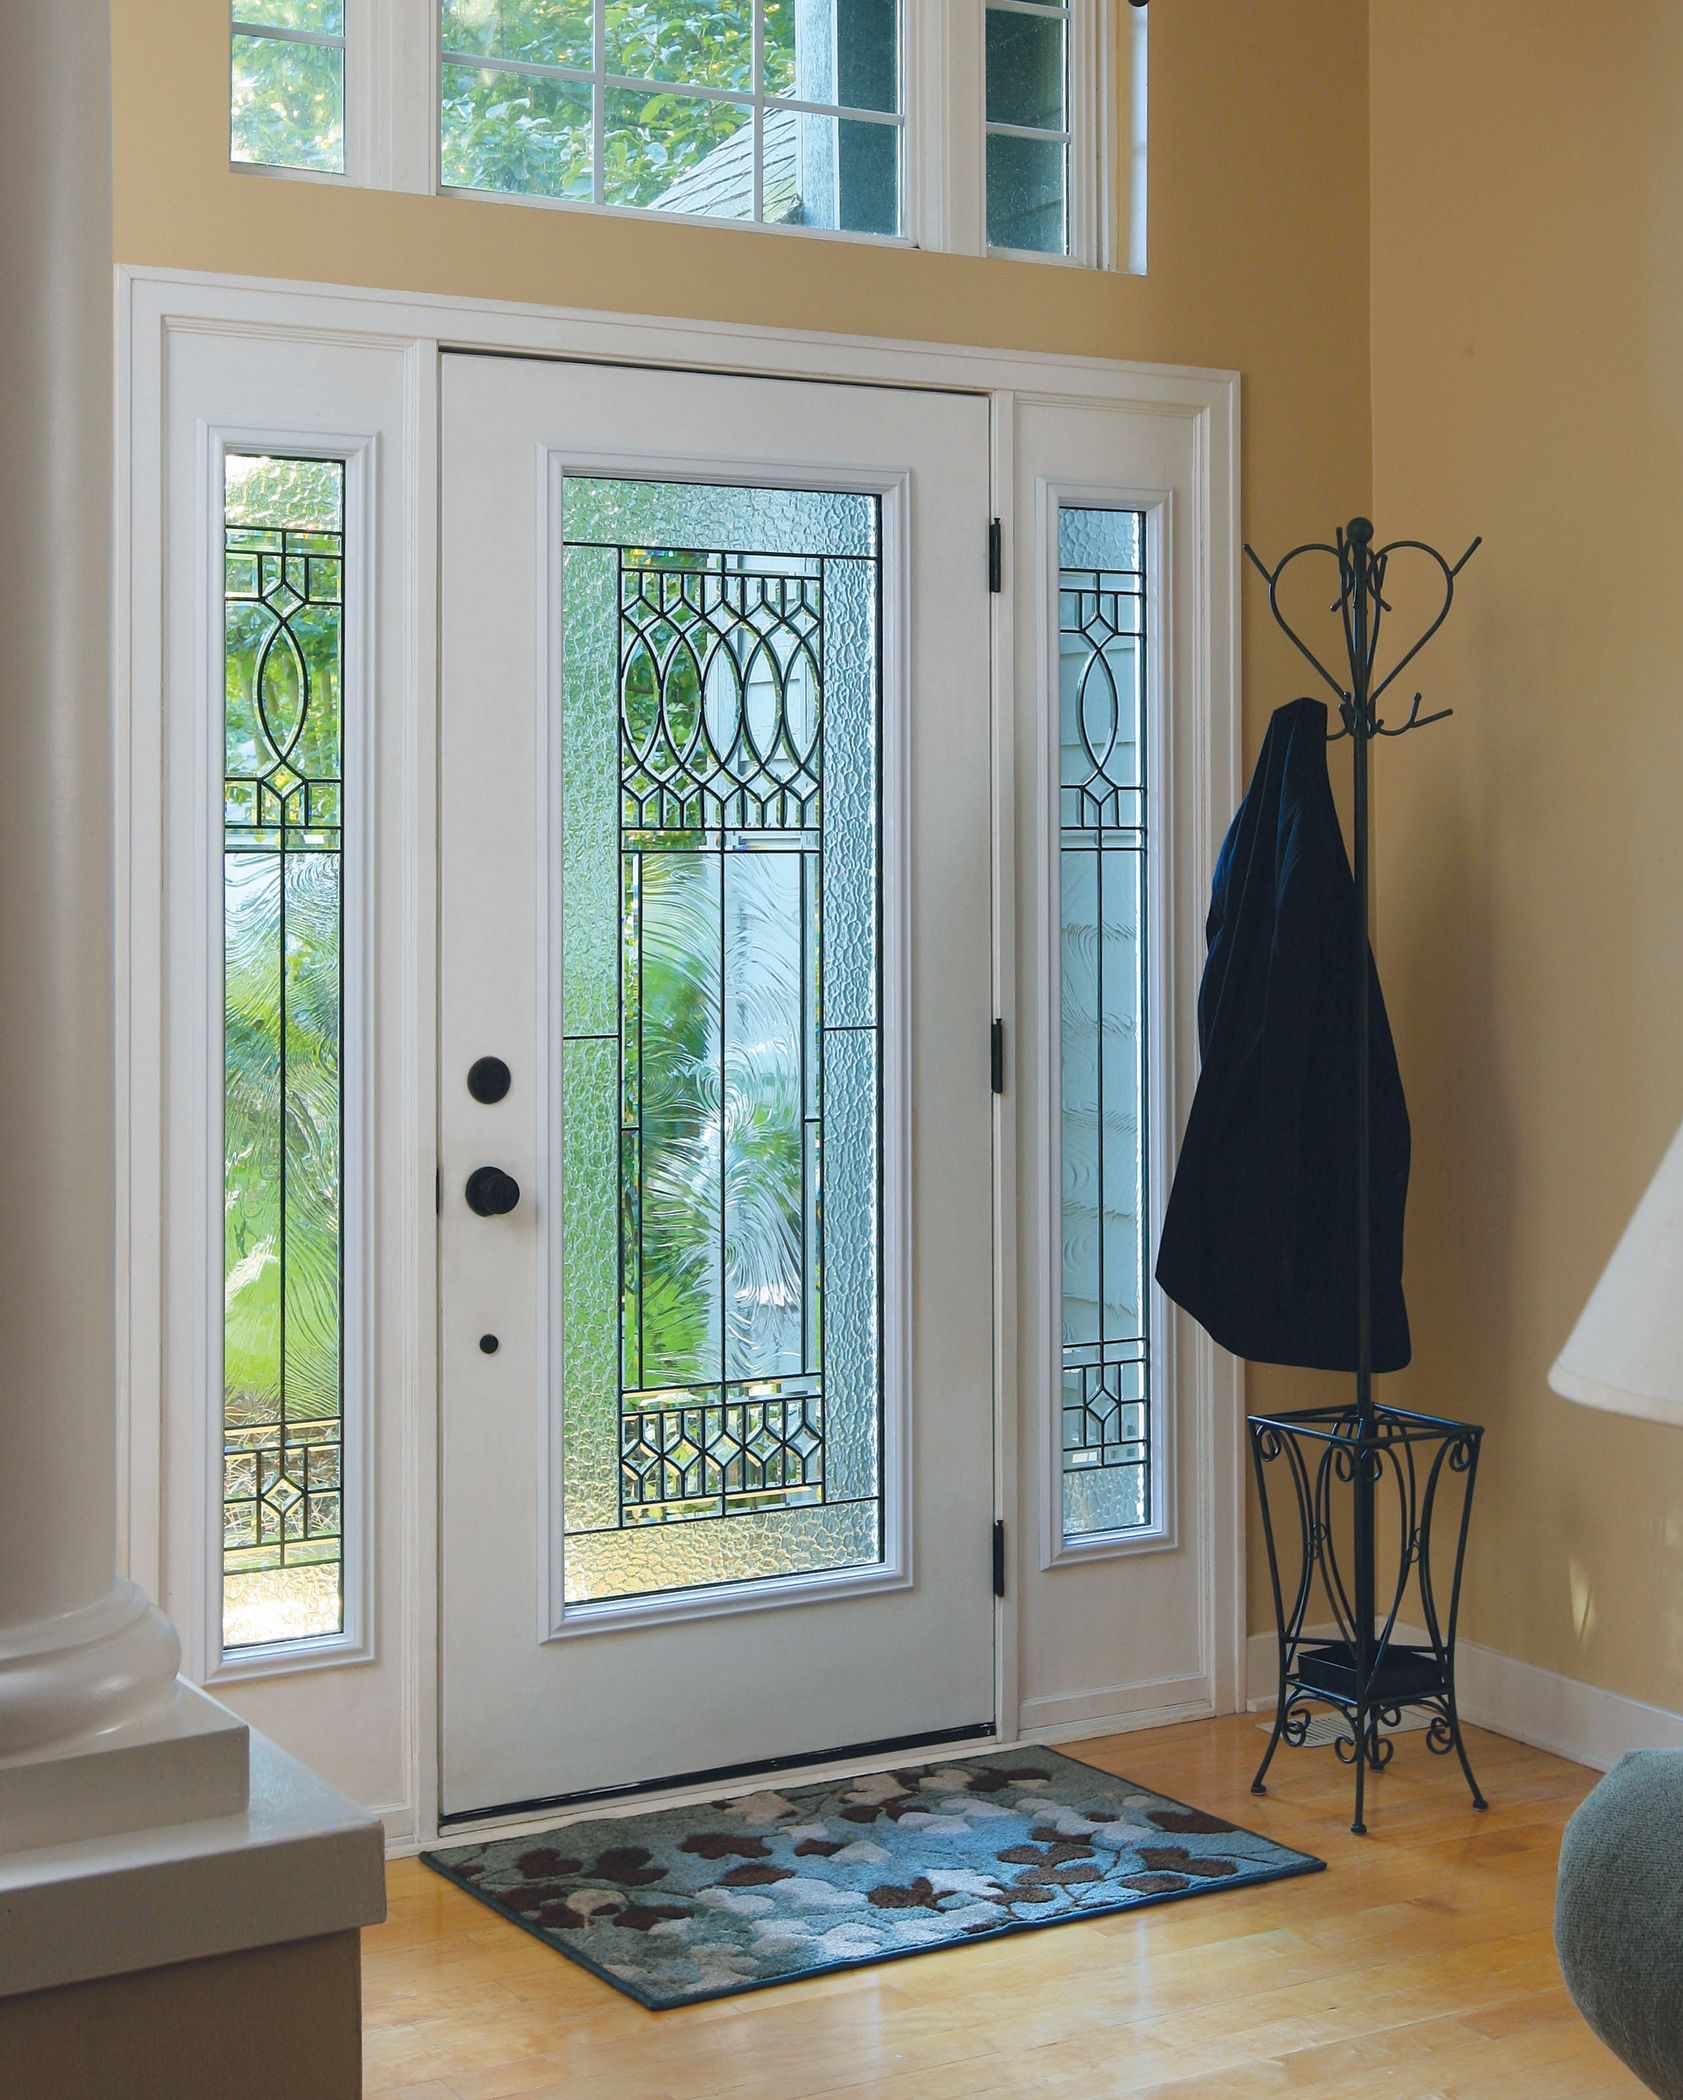 doors projects closet door insert pass diy for insertana white window with inserts ideas glass